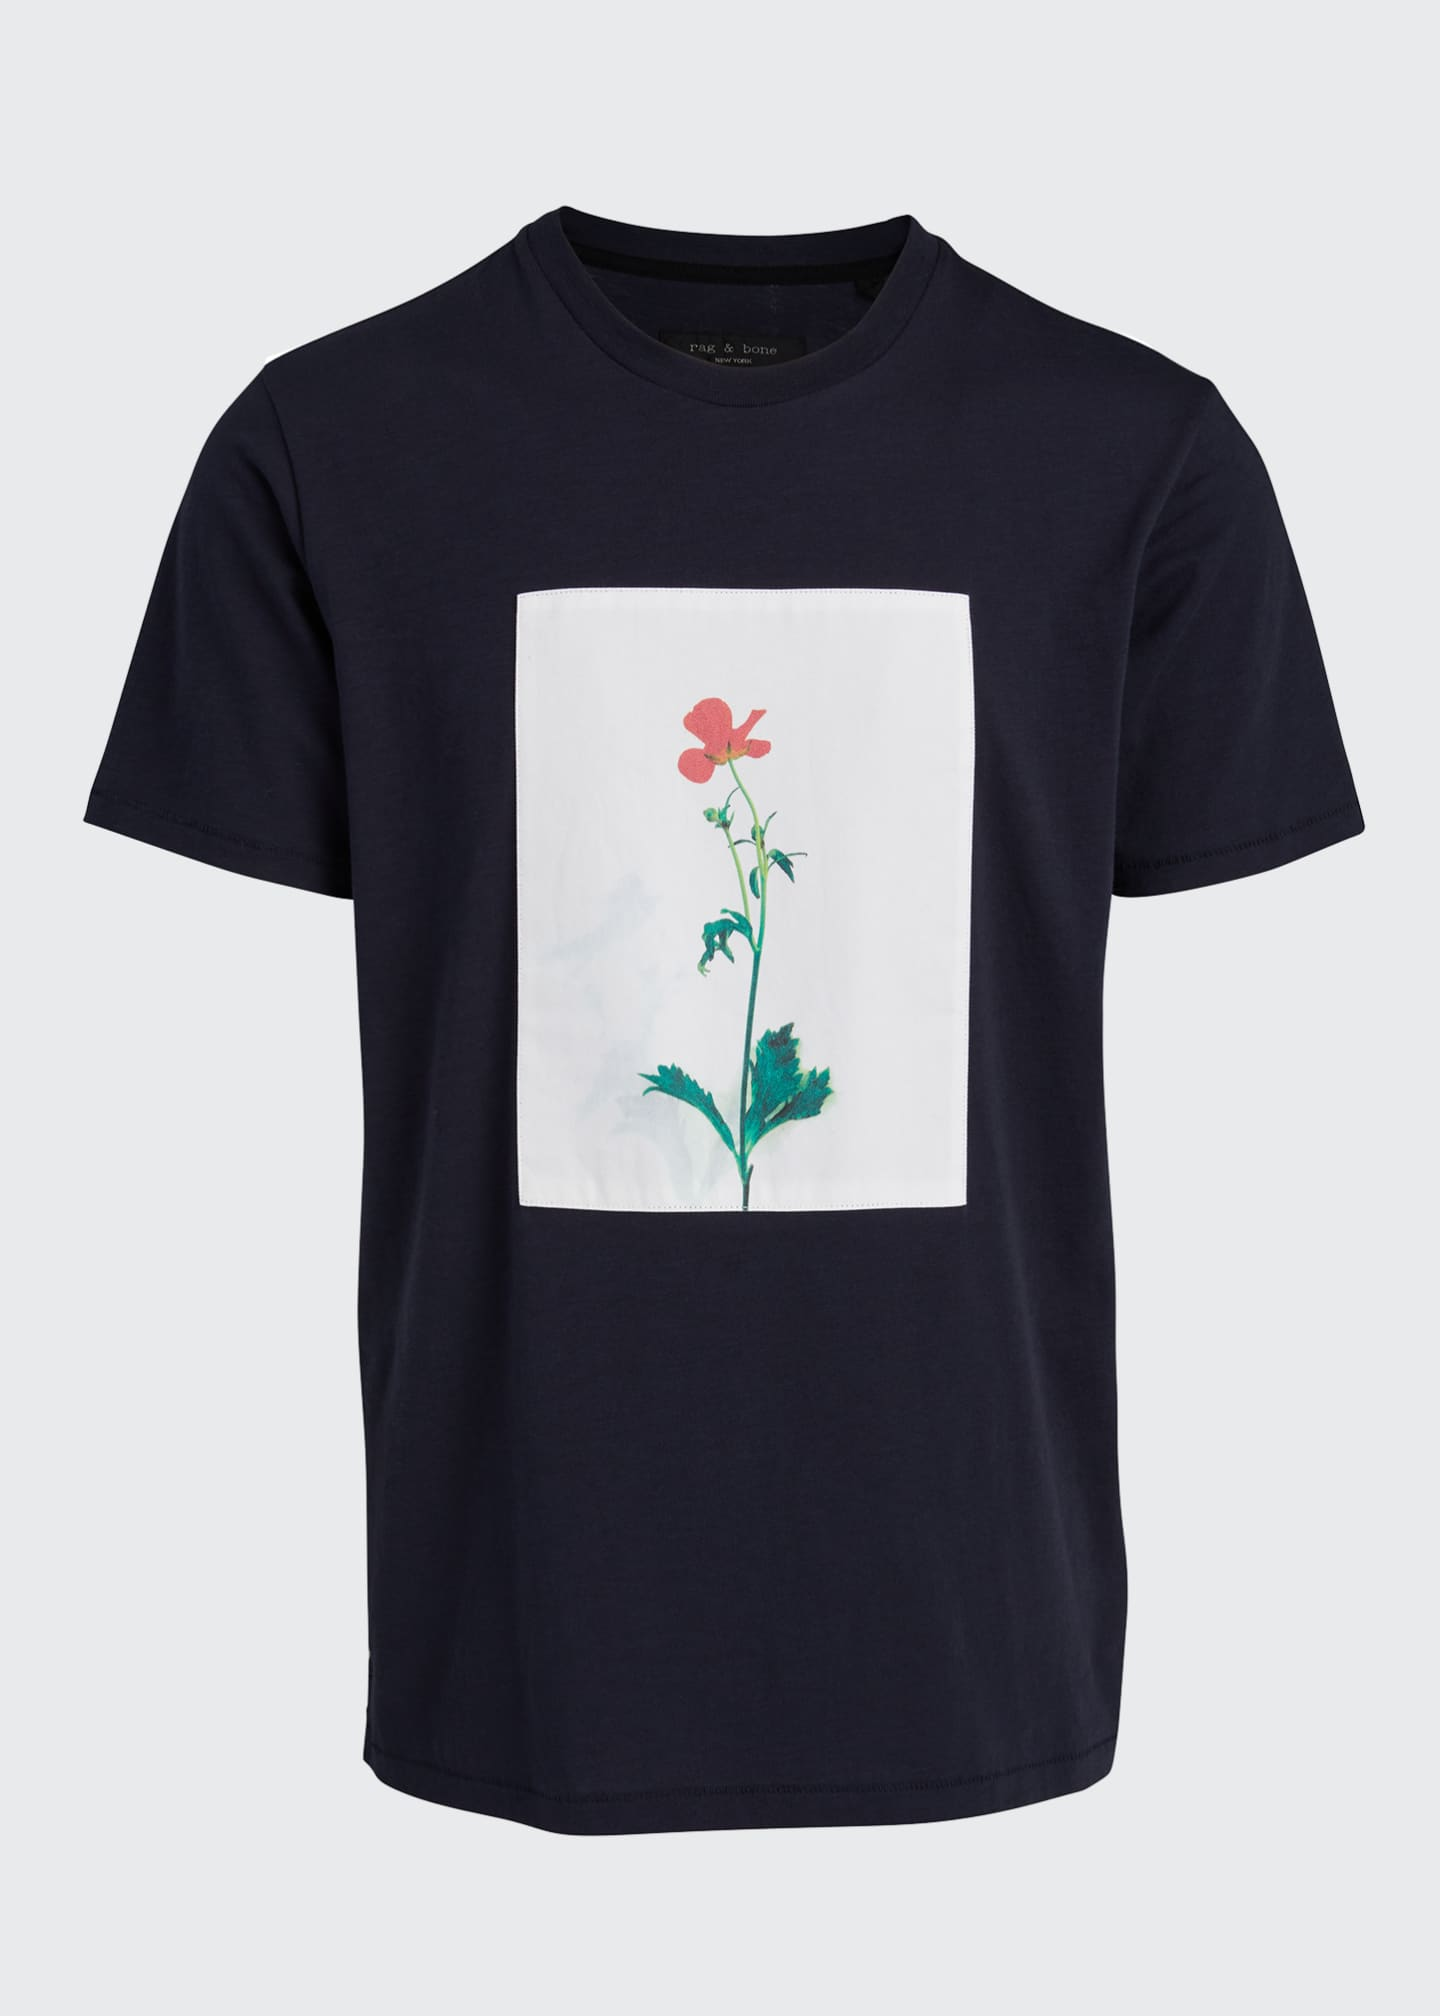 Image 5 of 5: Men's Flower Graphic T-Shirt